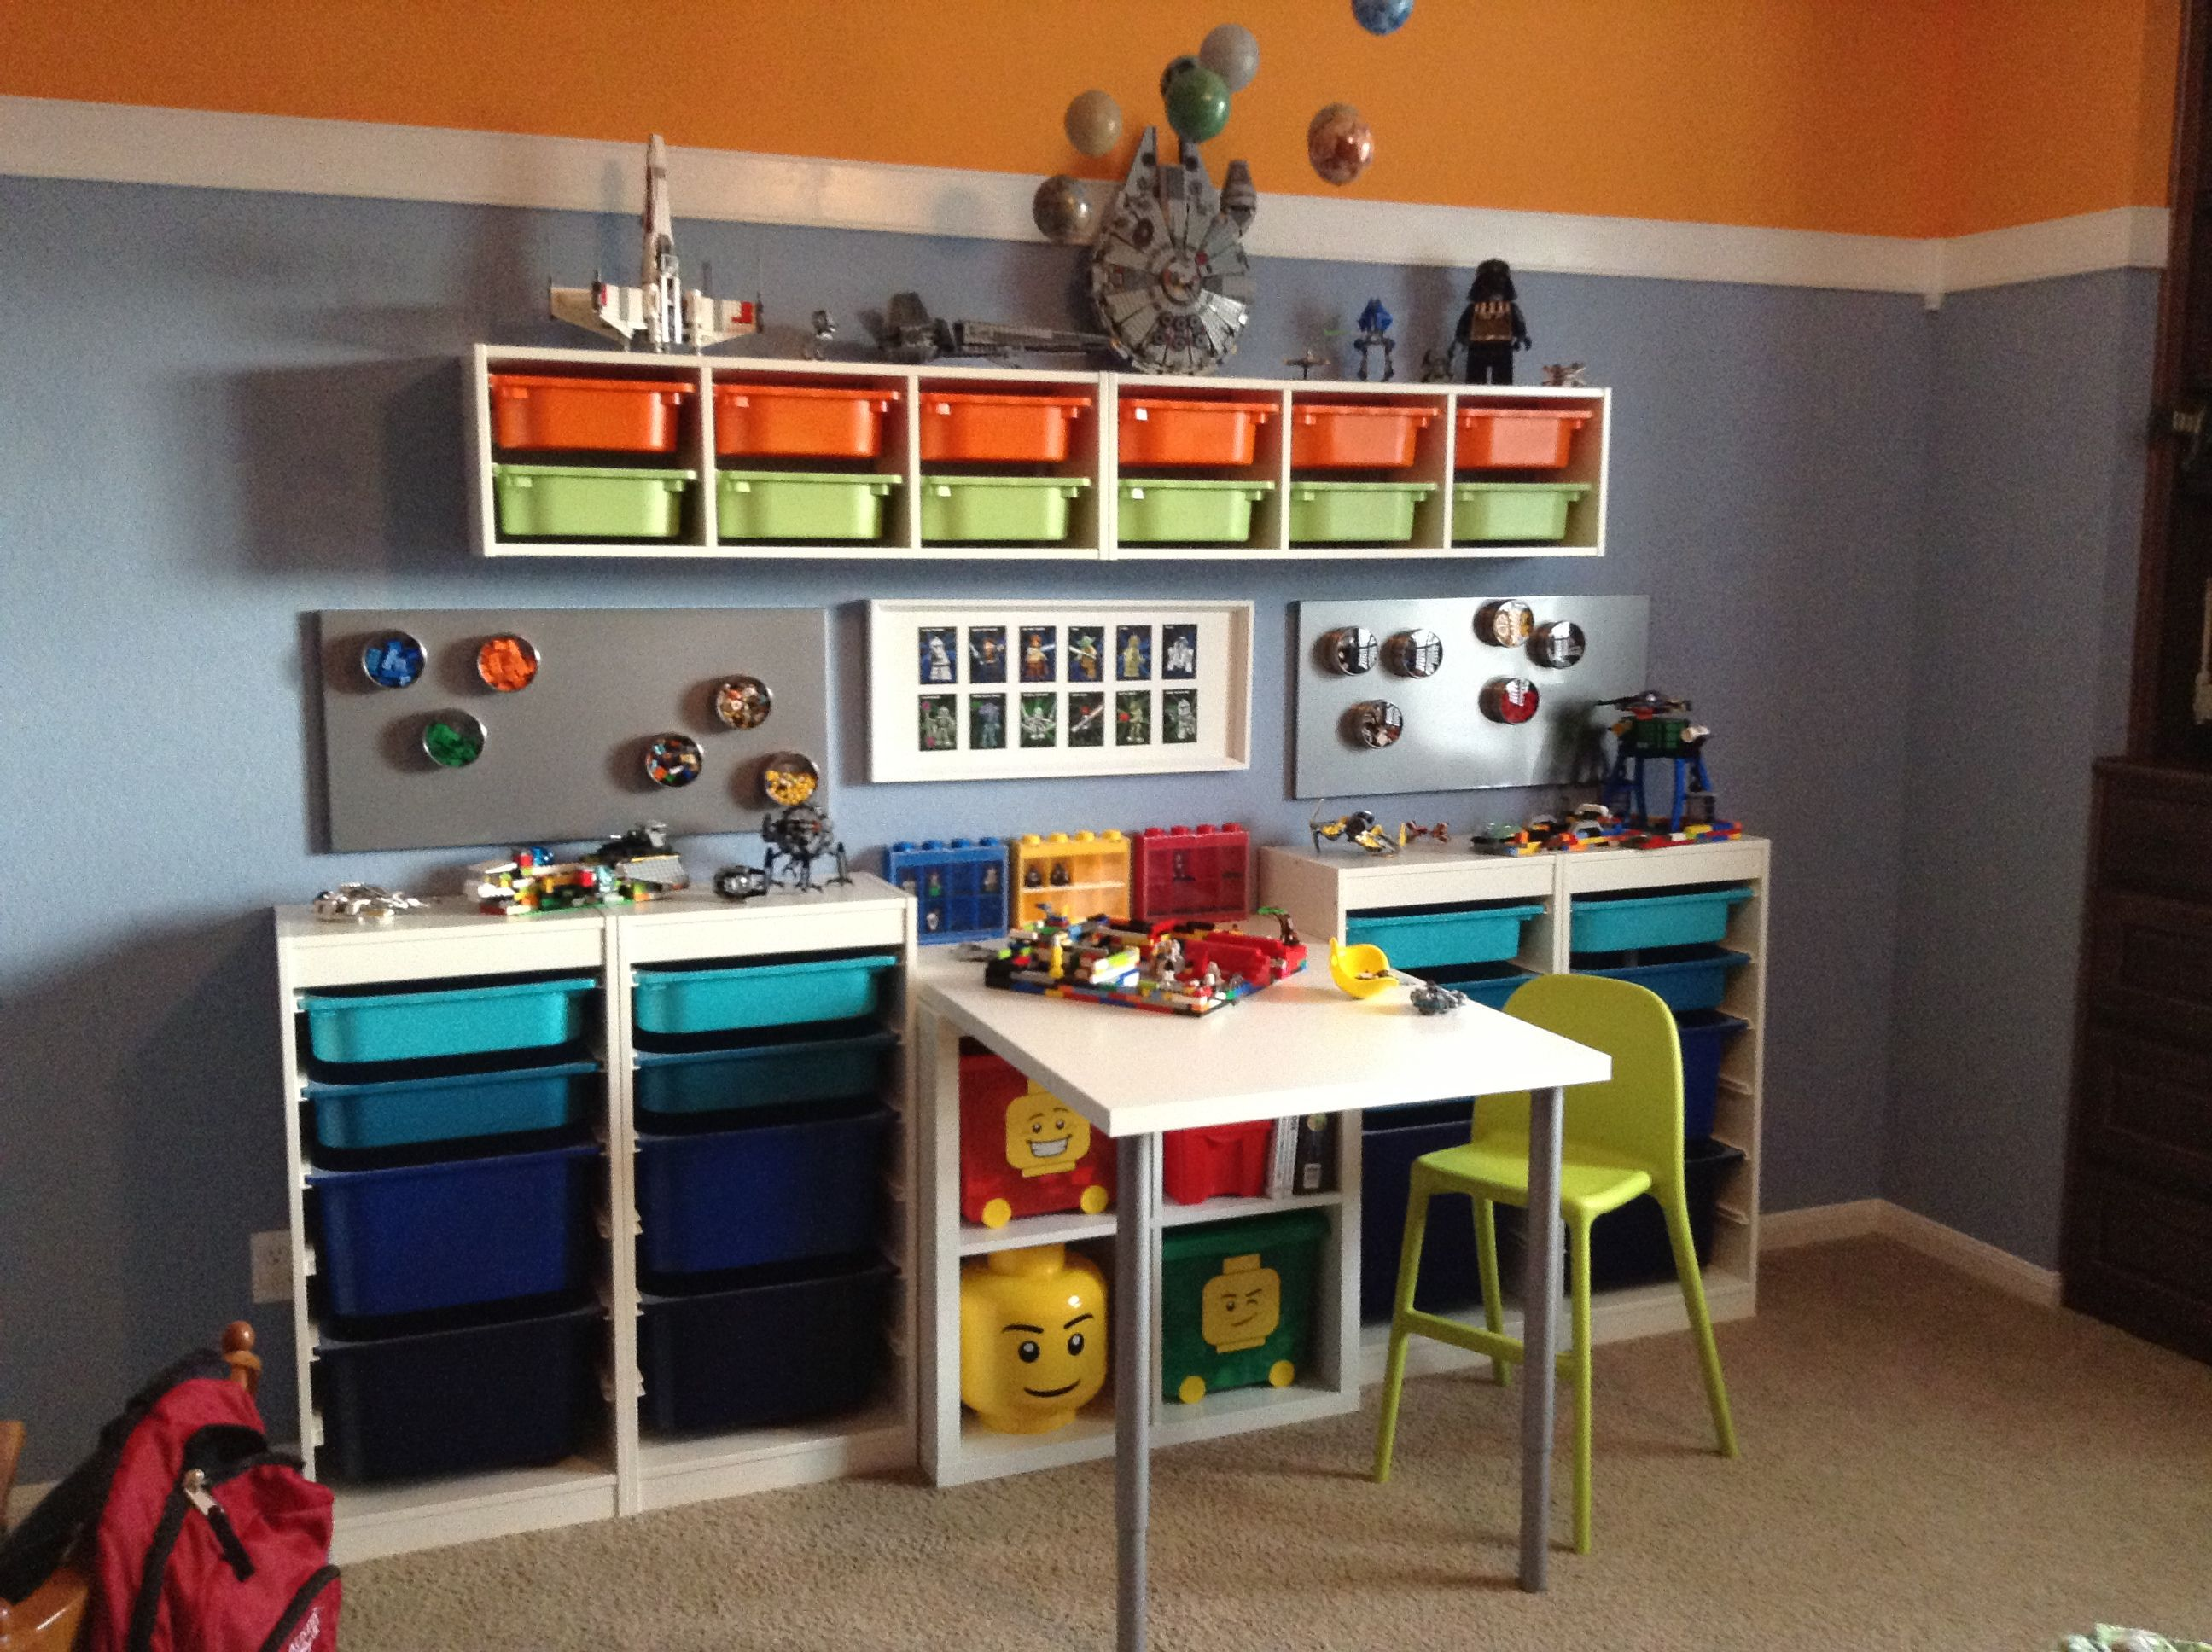 lego tables ikea hacks storage kinderzimmer pinterest kinderzimmer kinderzimmer ideen. Black Bedroom Furniture Sets. Home Design Ideas